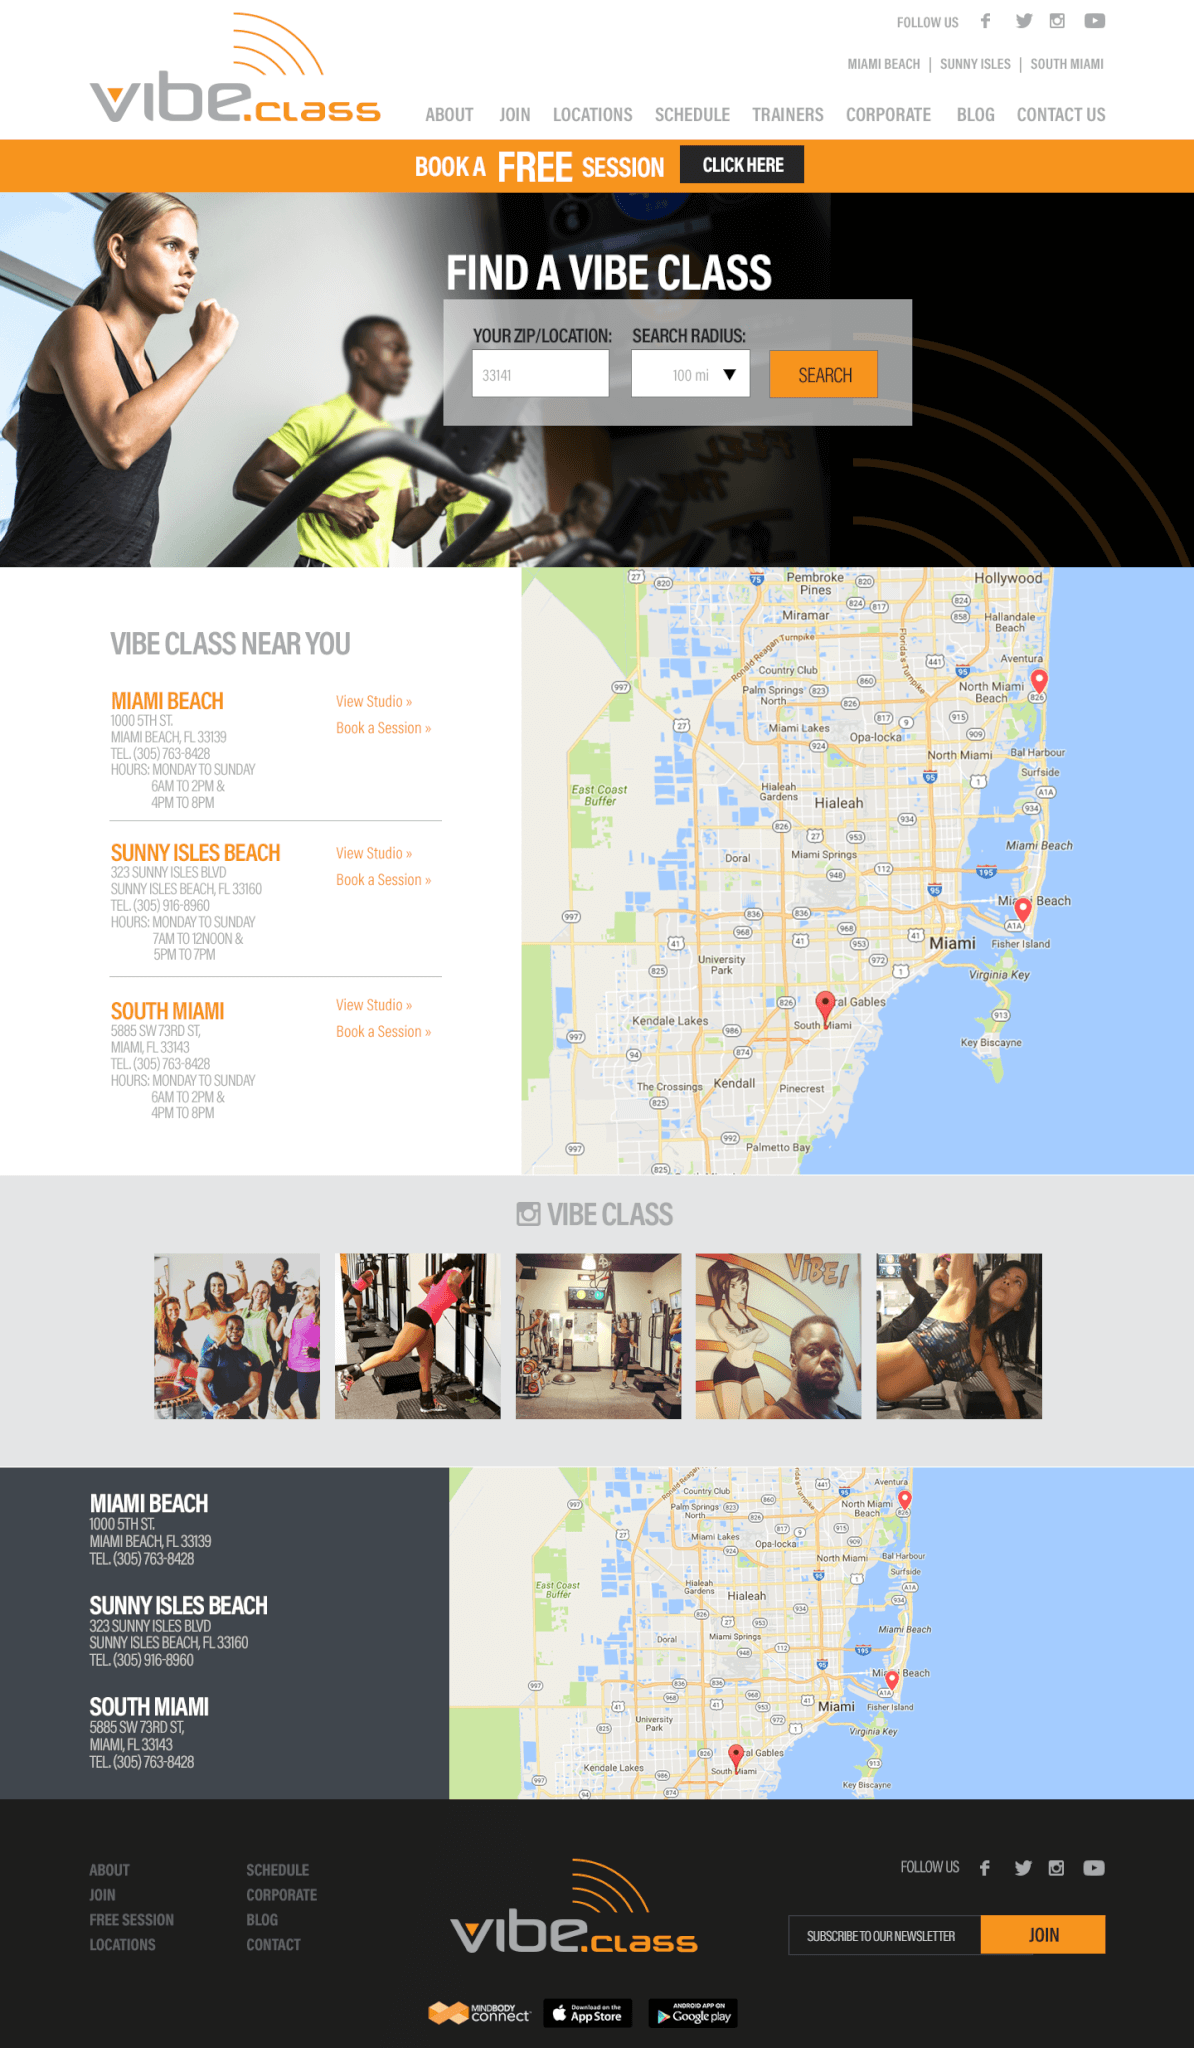 gym-web-site-design-healcode-wordpress